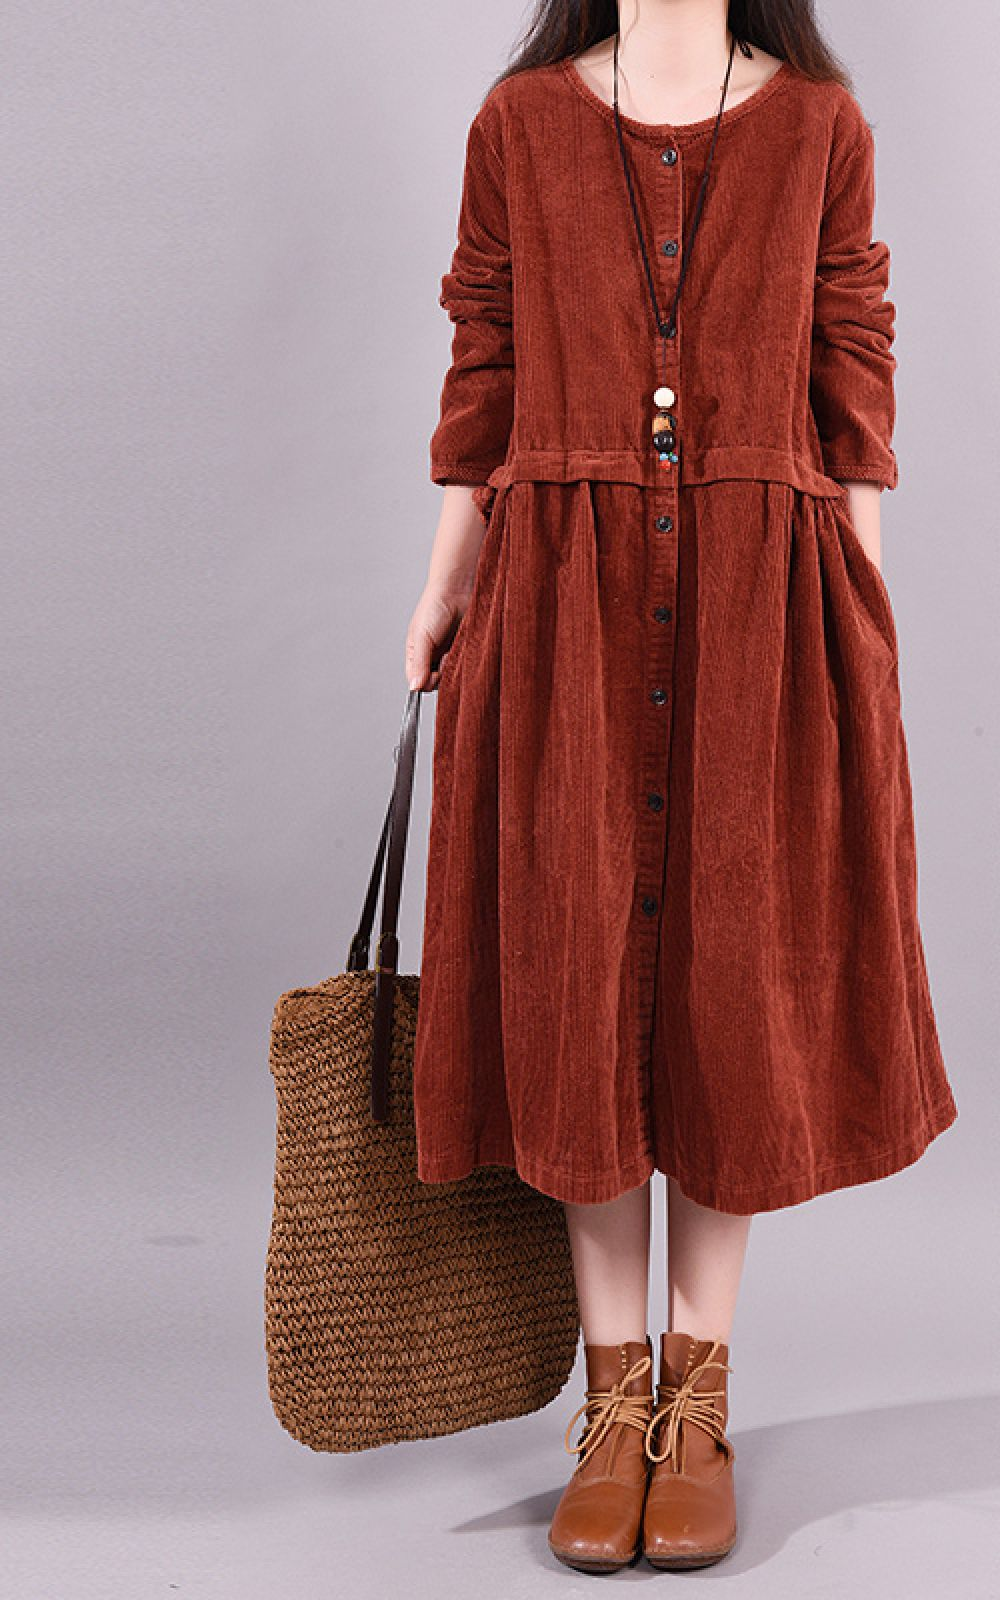 Https Www Buykud Com Collections August 21 New Products Buykud Long Sleeve Round Neck Corduroy Casual Midi Dress Midi Dress Casual Dresses Midi Dress [ 1600 x 1000 Pixel ]